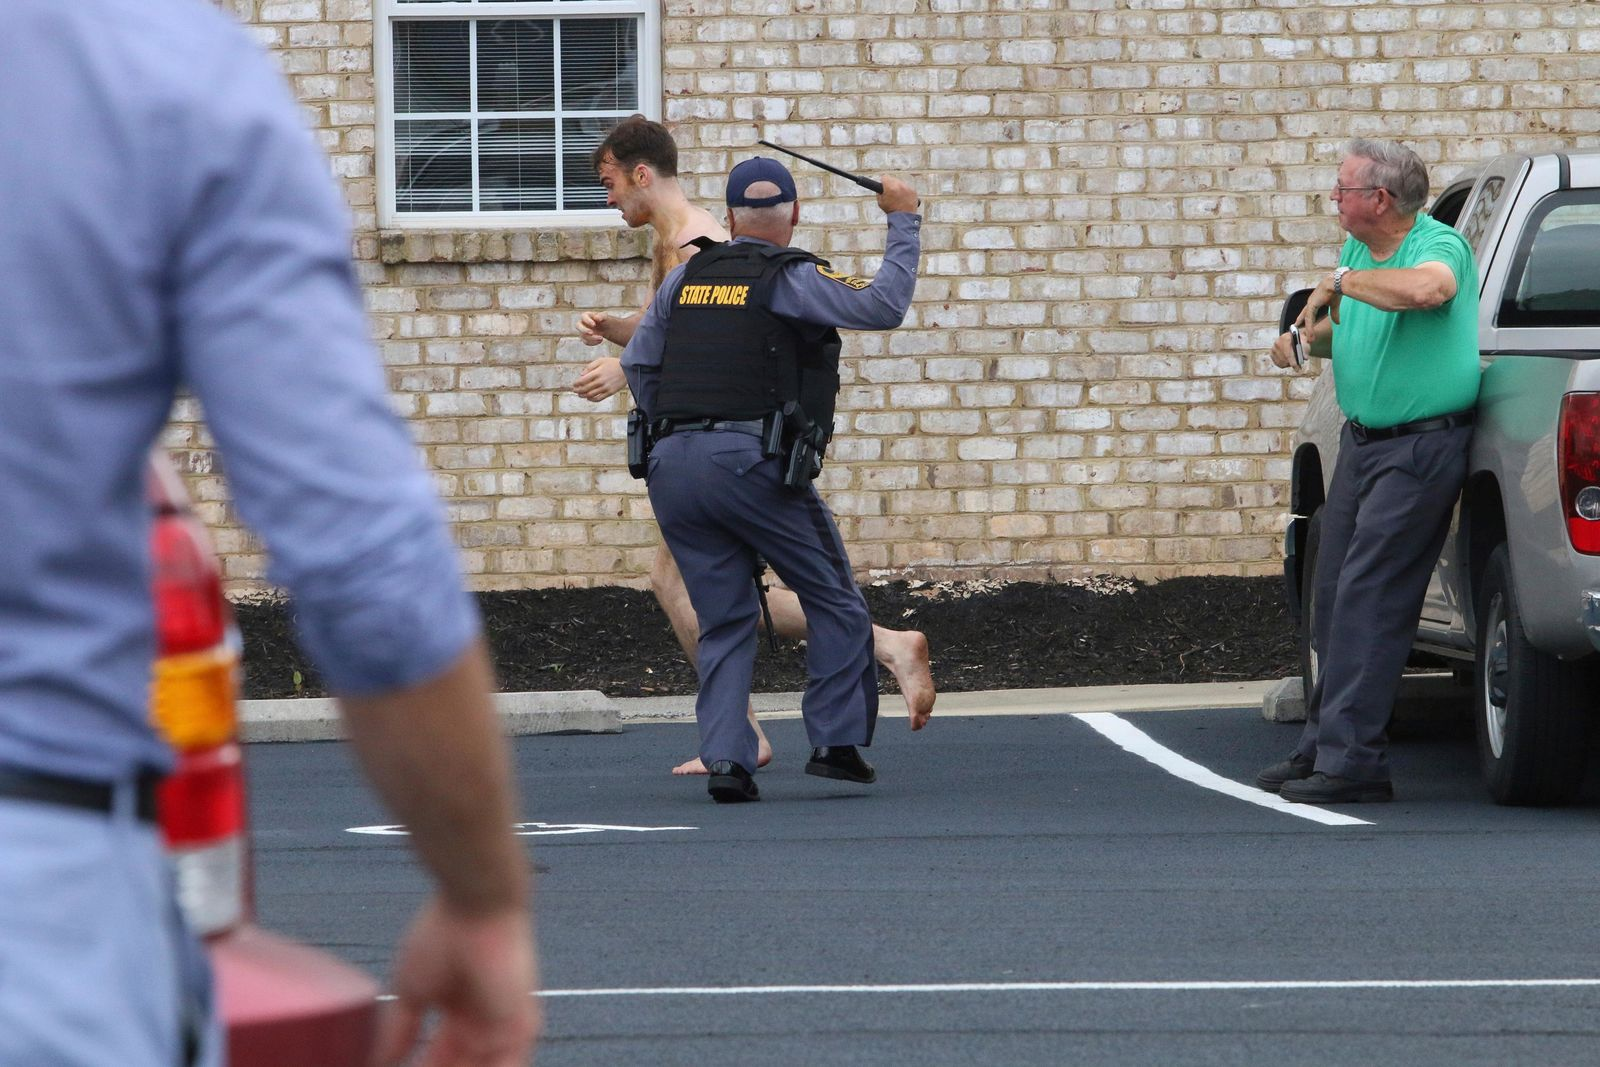 State Police chase Matthew Thomas Bernard after attacking Keeling Baptist Church groundskeeper Loyd Gauldin, right, on Tuesday, Aug. 27, 2019 in Keeling, Va. (Matt Bell/Star-Tribune Chatham, Va. via AP)